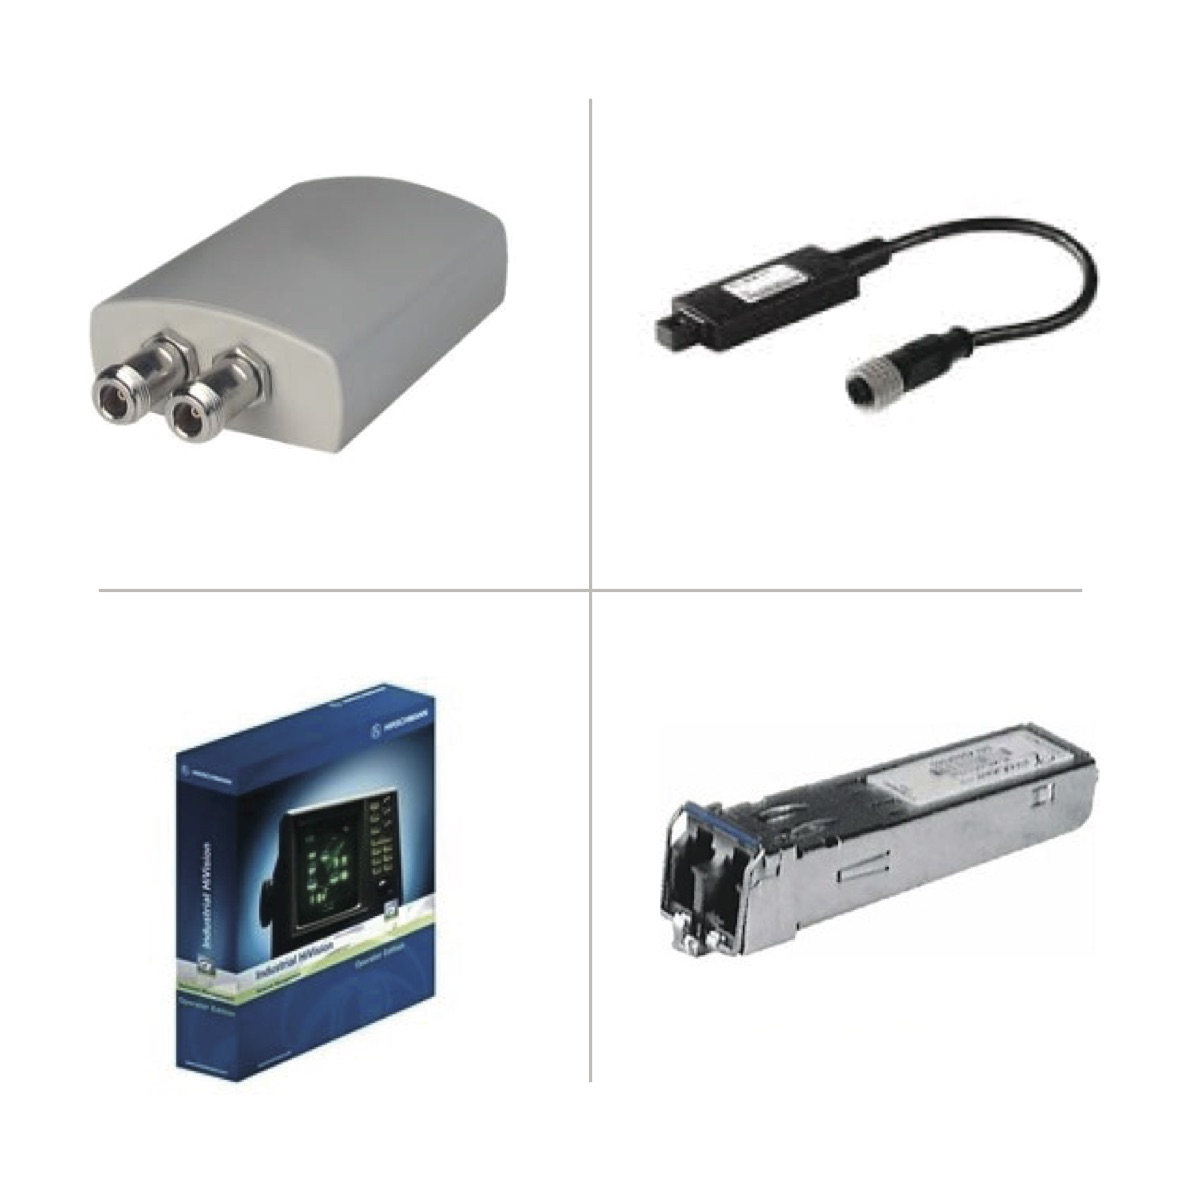 Hirschmann Industrial Ethernet Accessories